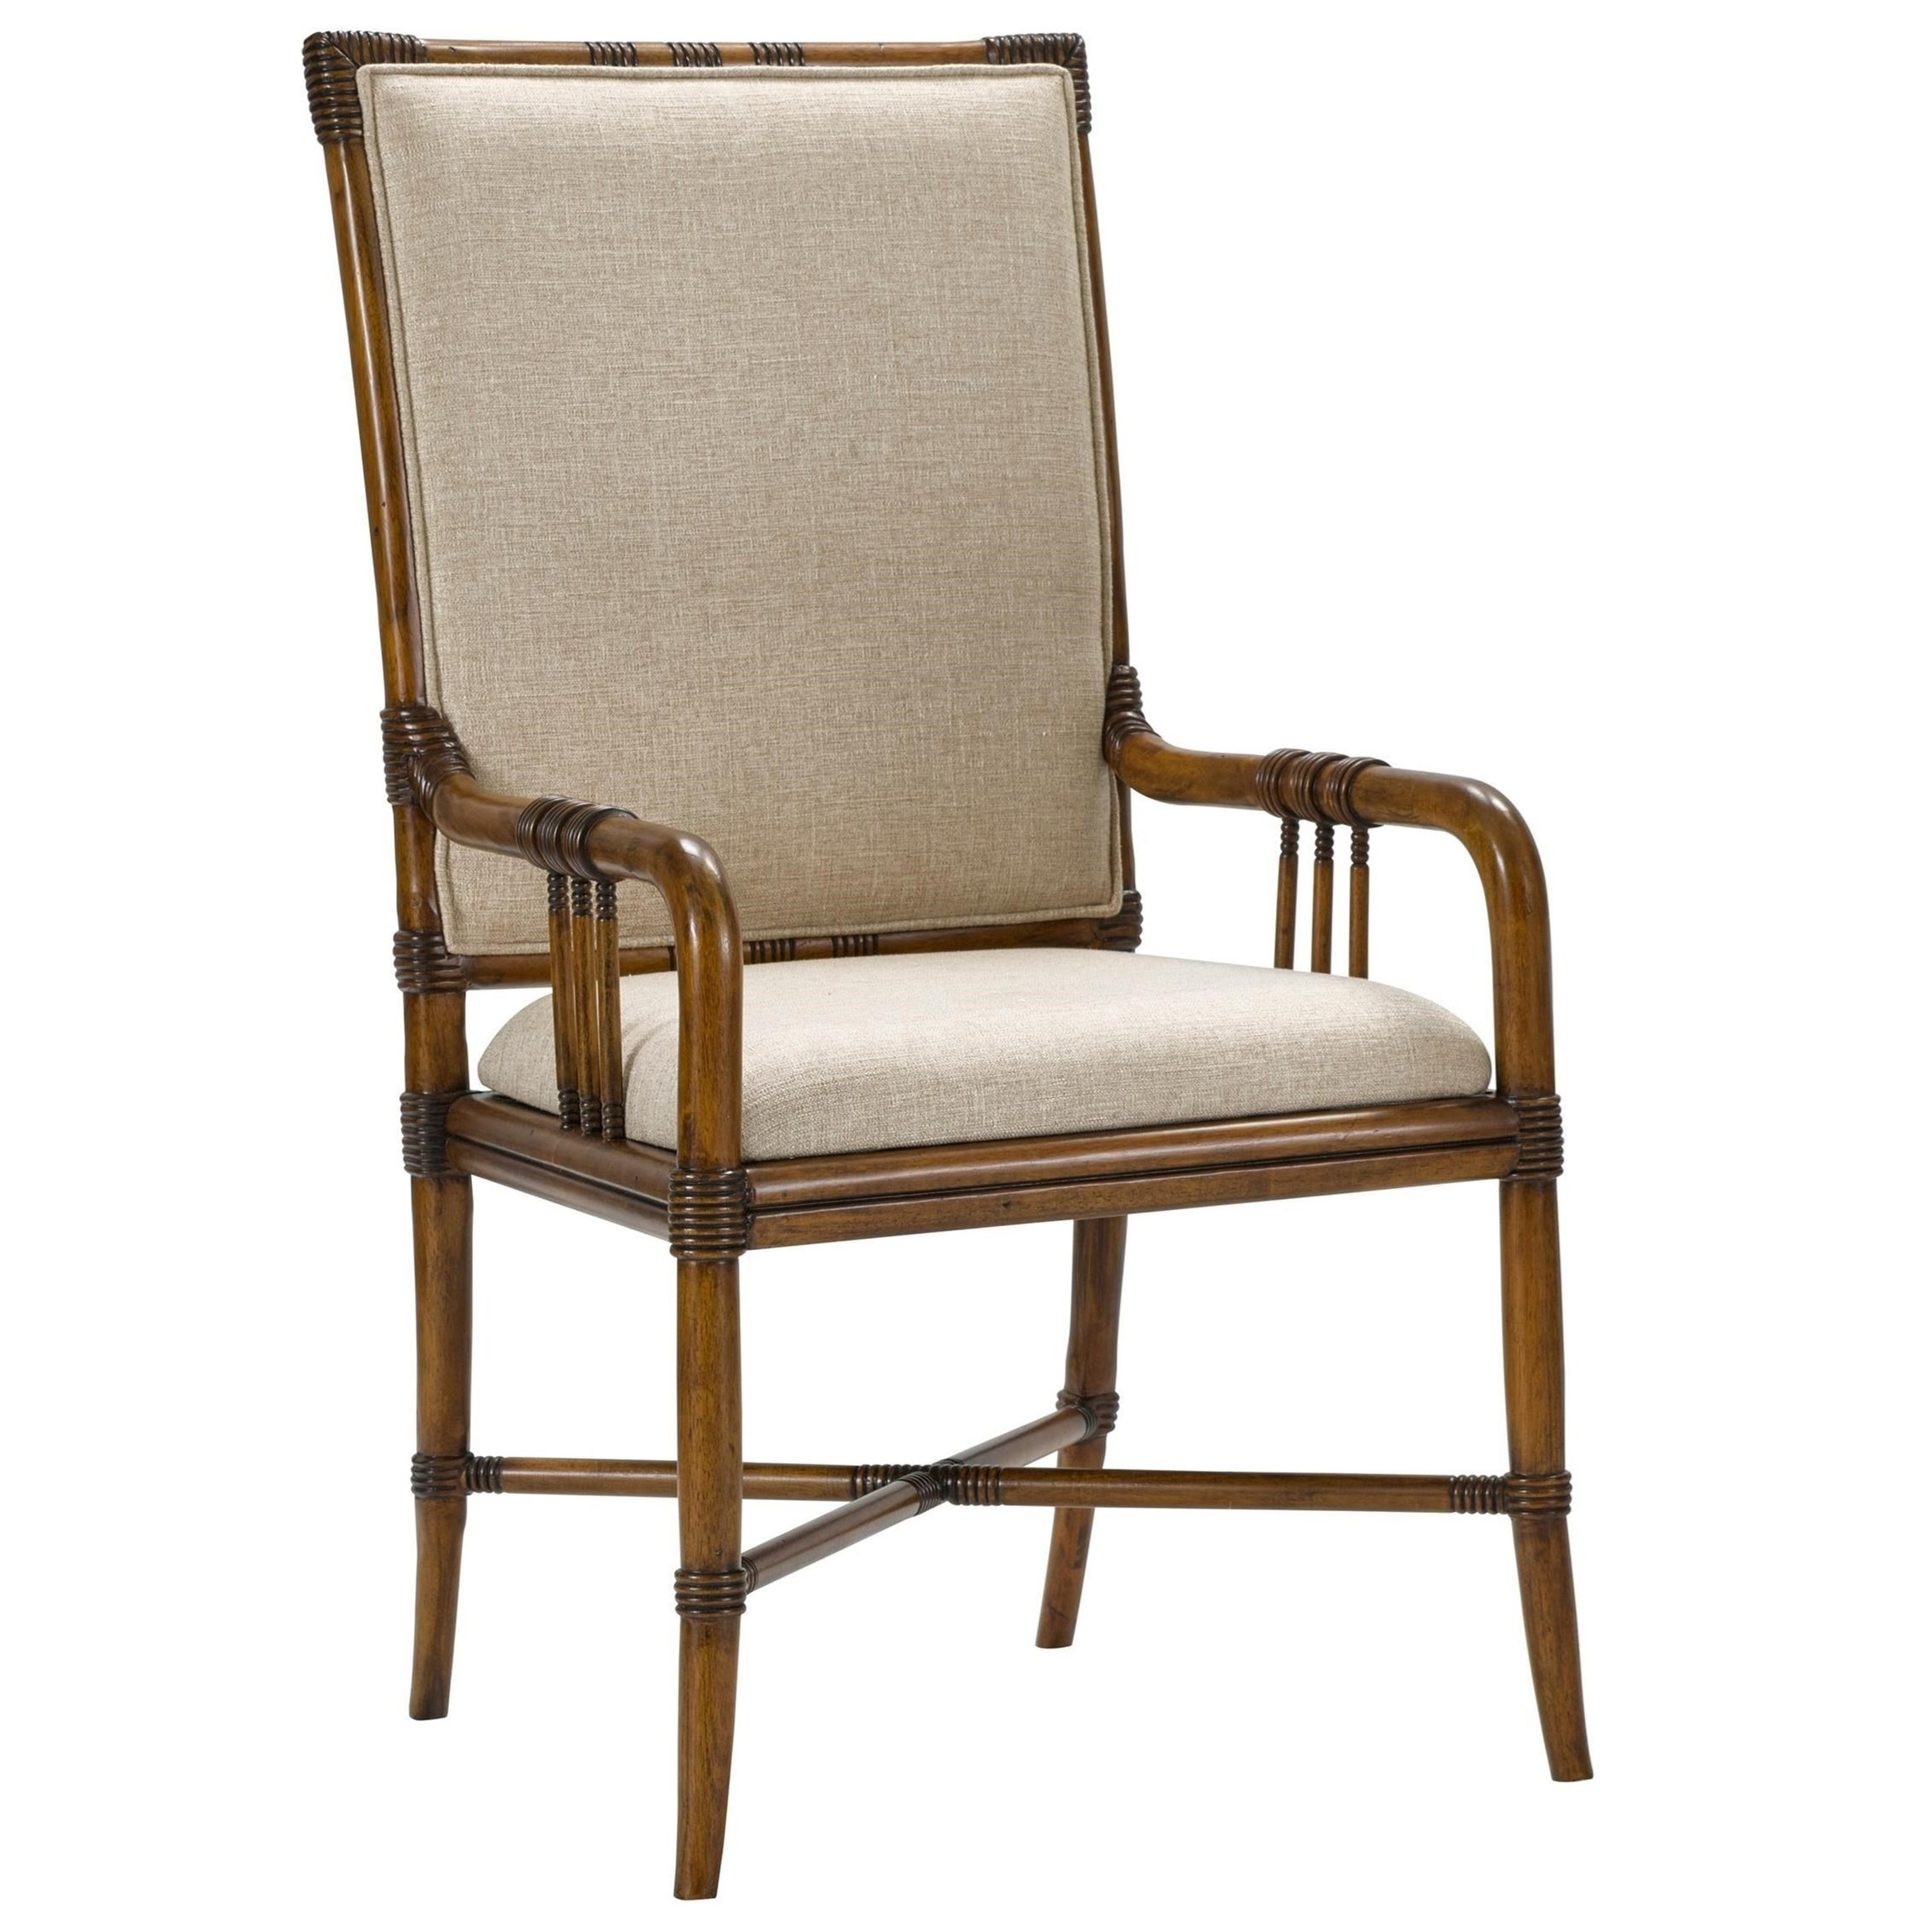 Broyhill Furniture Amalie Bay Bamboo Arm Chair - Item Number: 4548-584